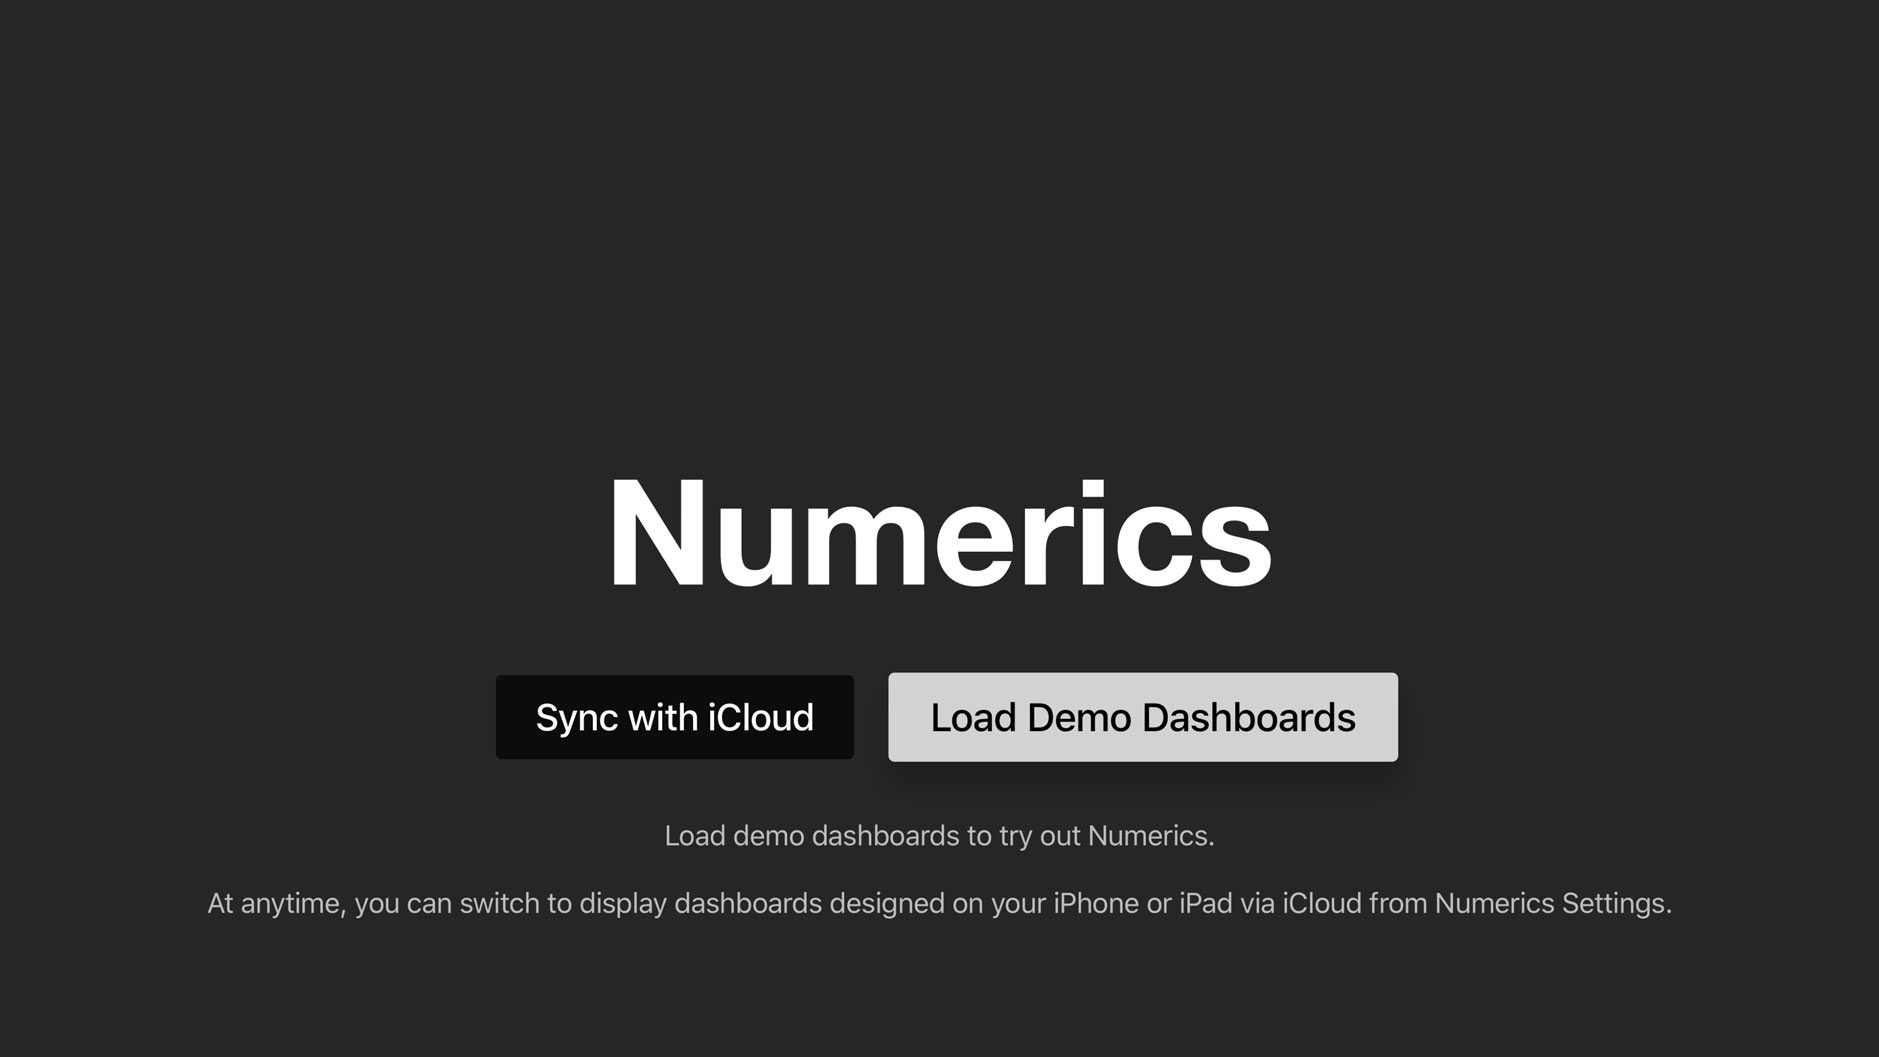 Load Demo Dashboards